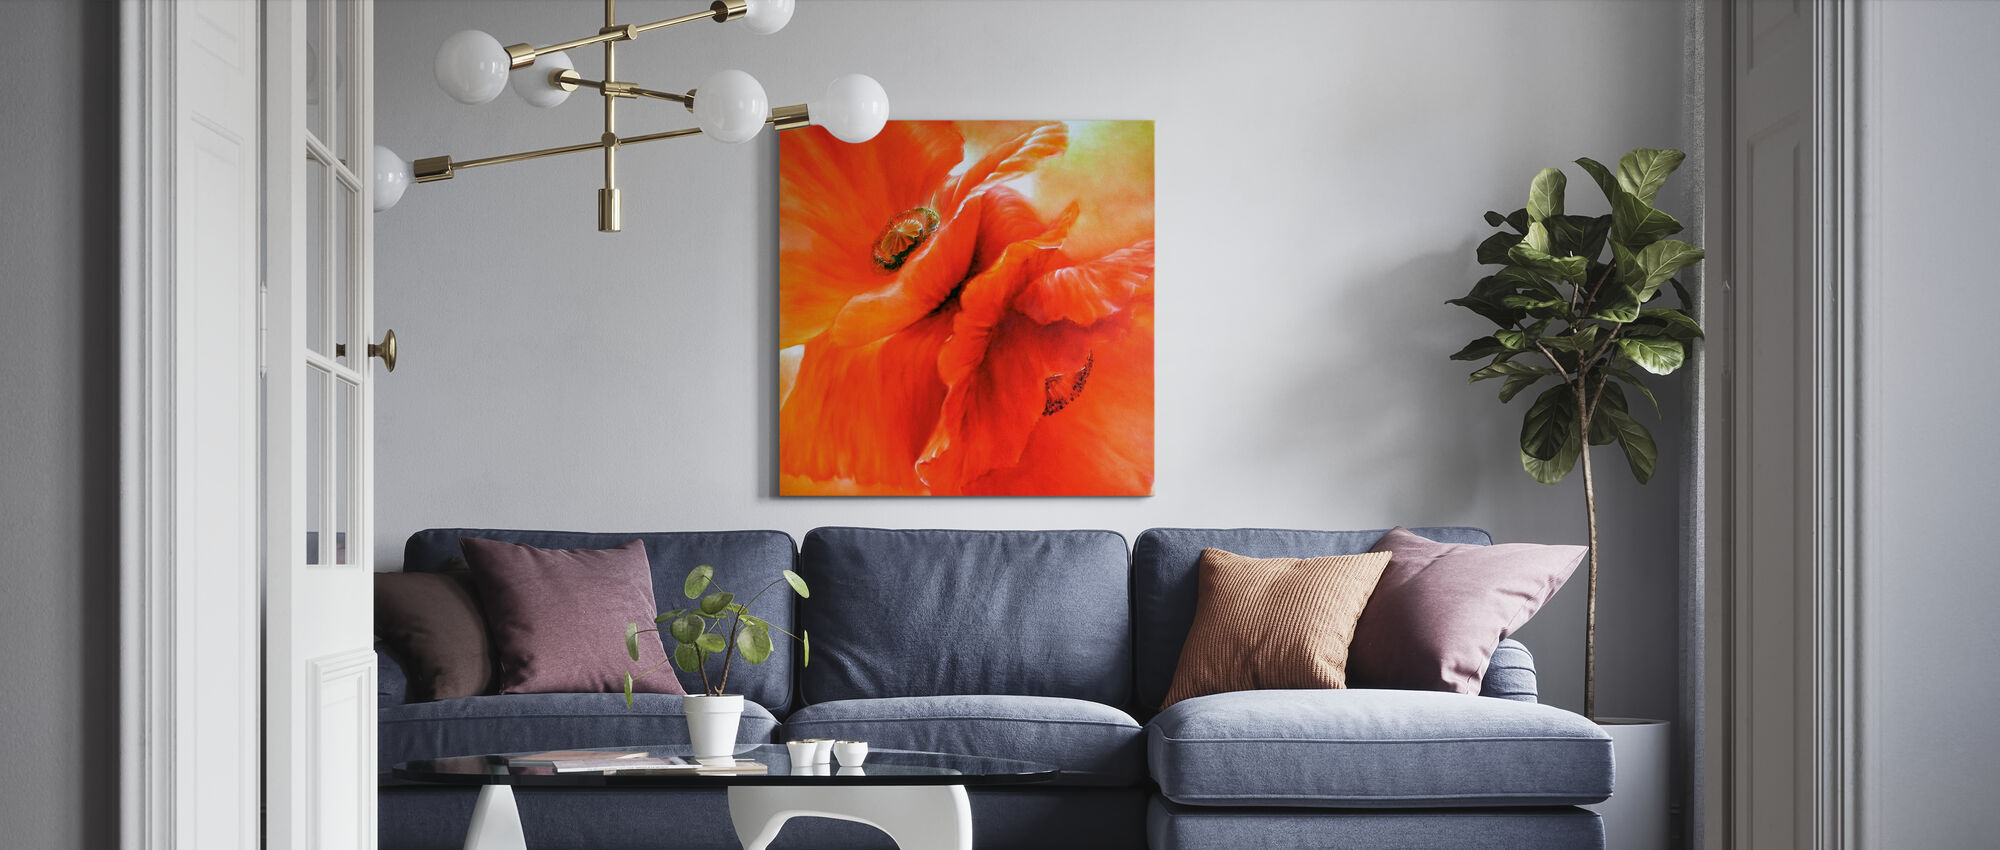 Red Poppy - Canvas print - Living Room